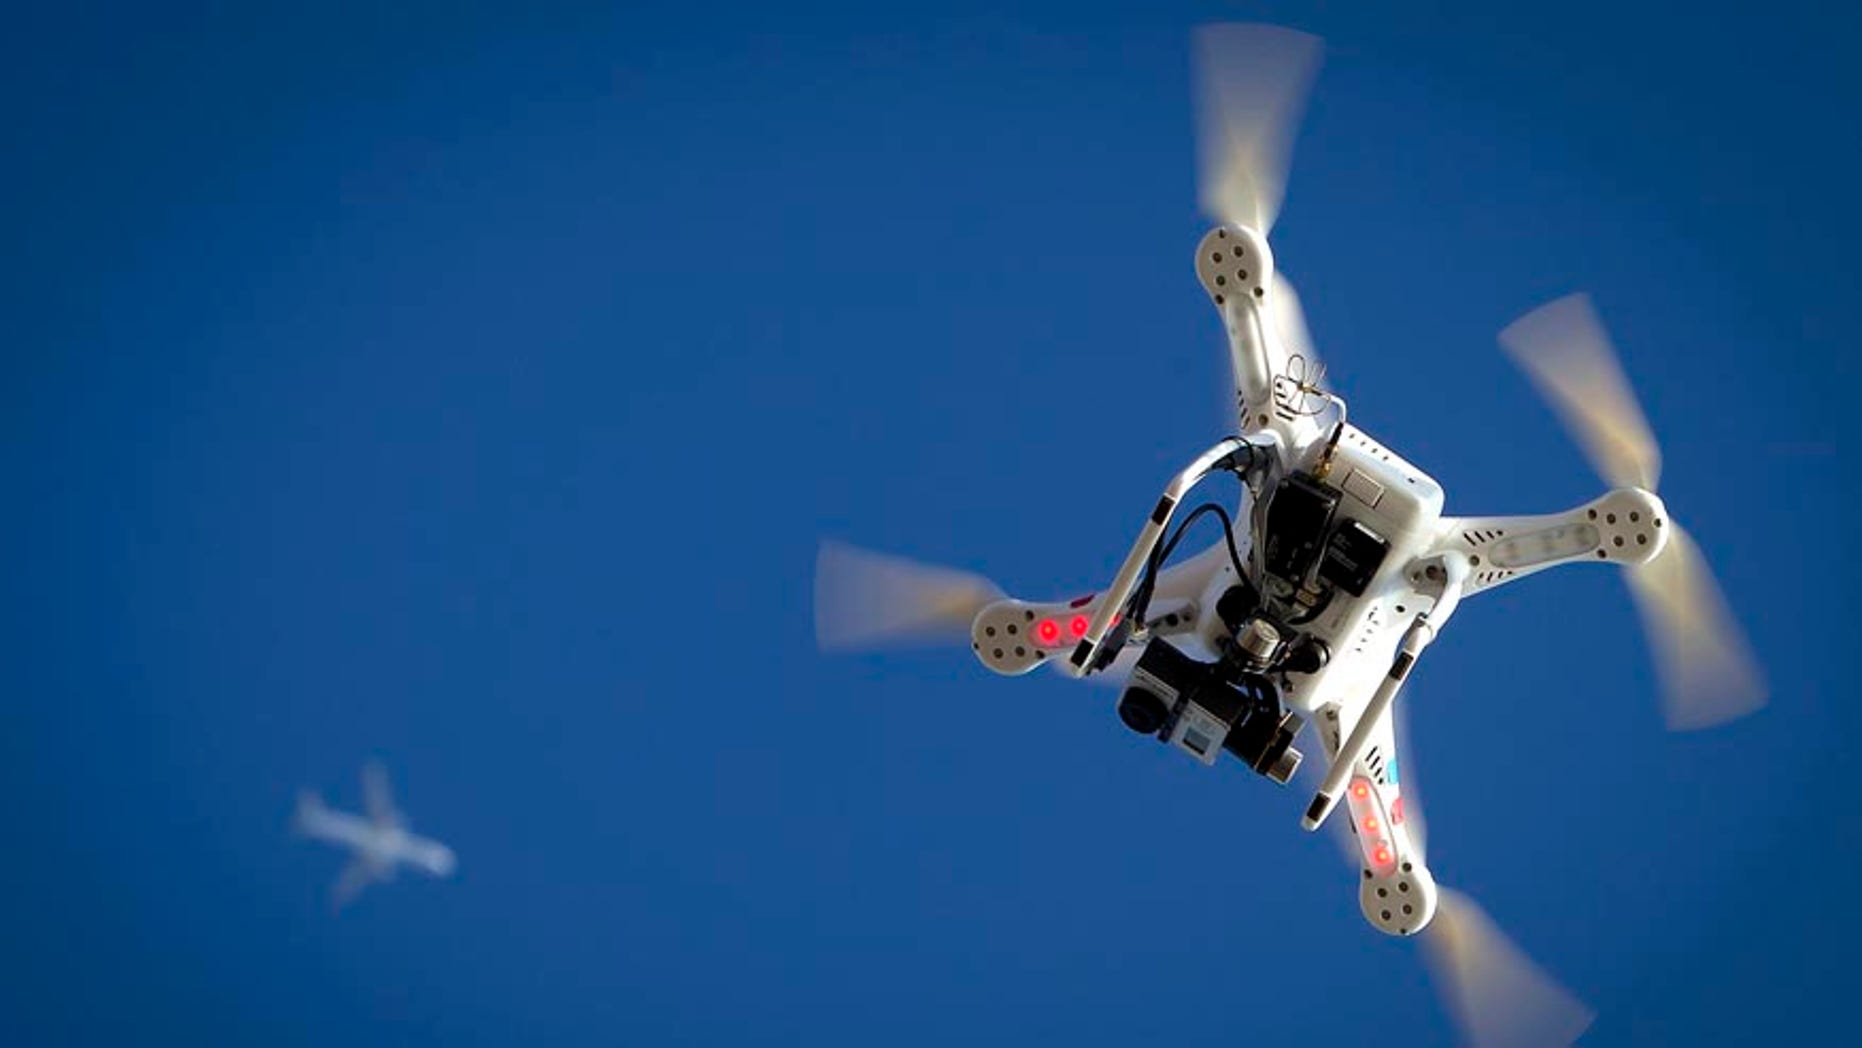 File photo. An airplane flies over a drone during the Polar Bear Plunge on Coney Island in the Brooklyn borough of New York January 1, 2015.